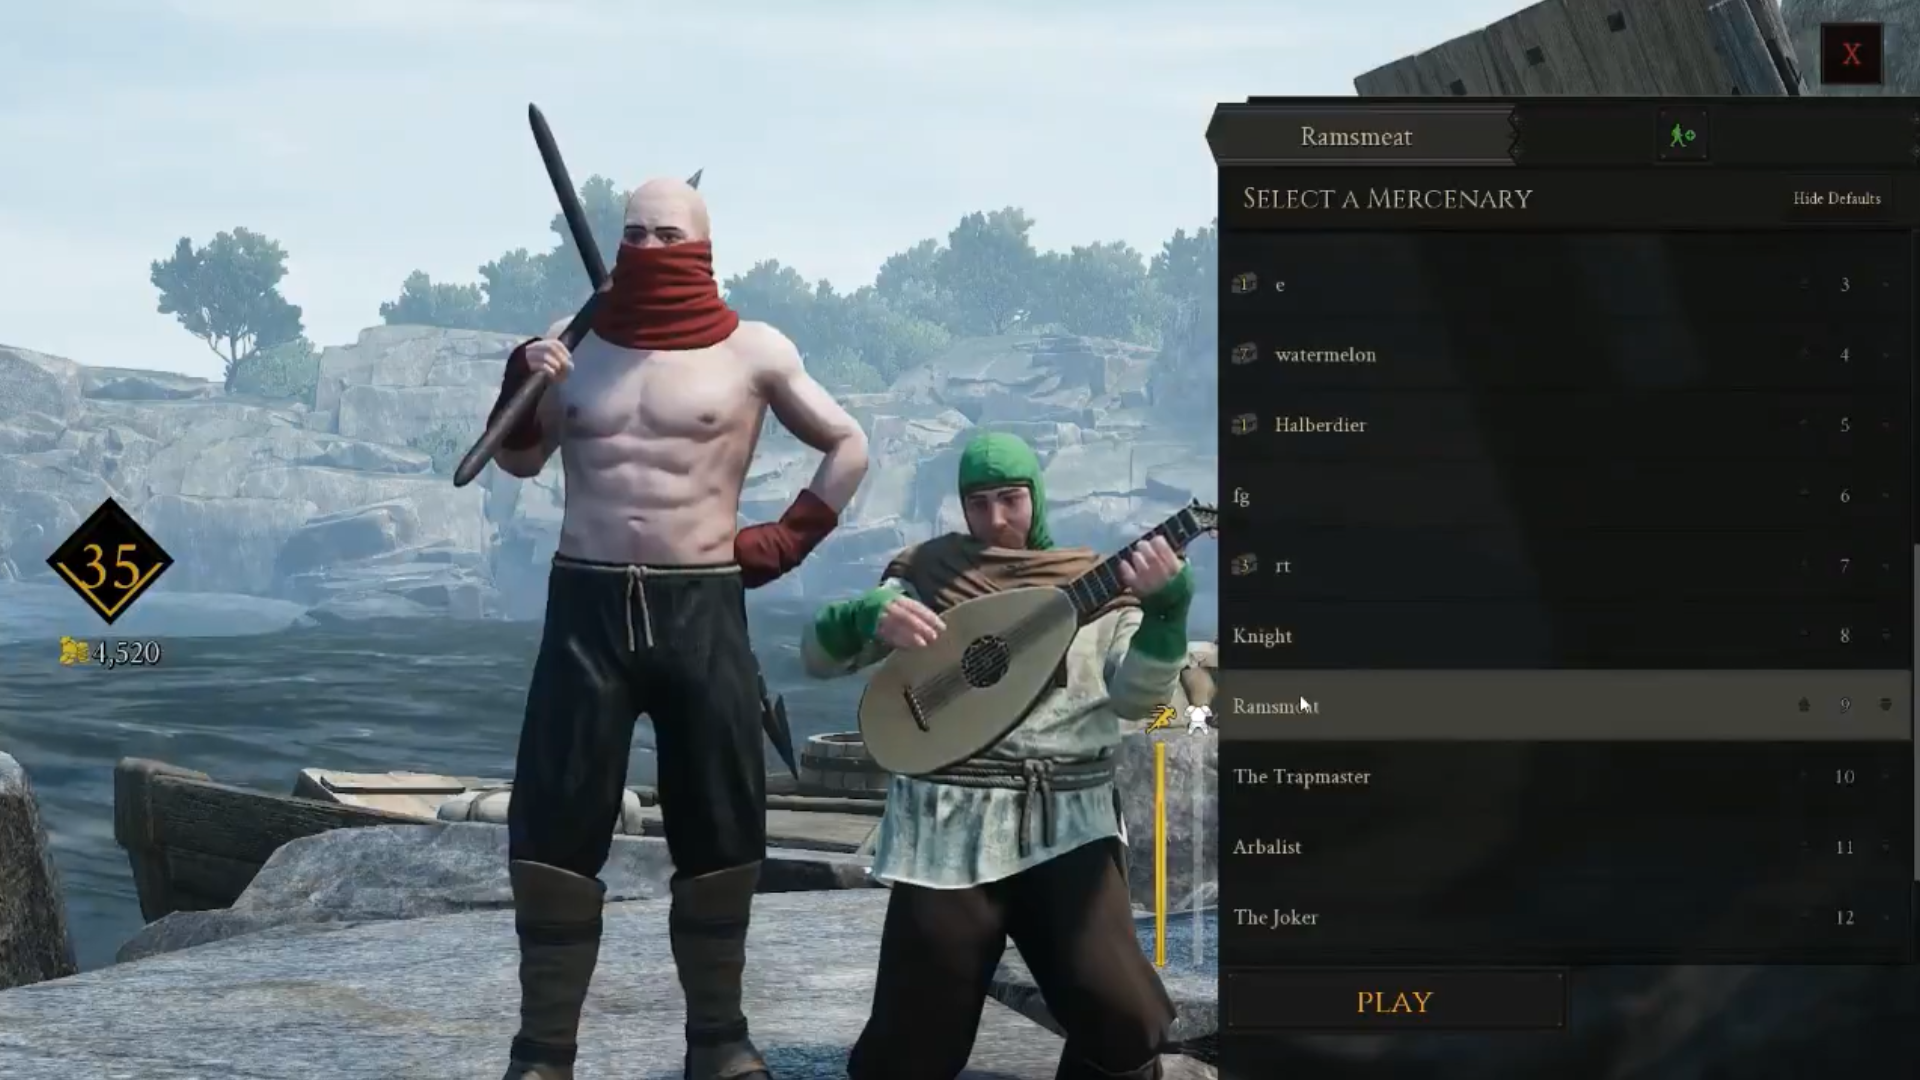 Mordhau Players Glitch Out Of Map To Troll Each Other